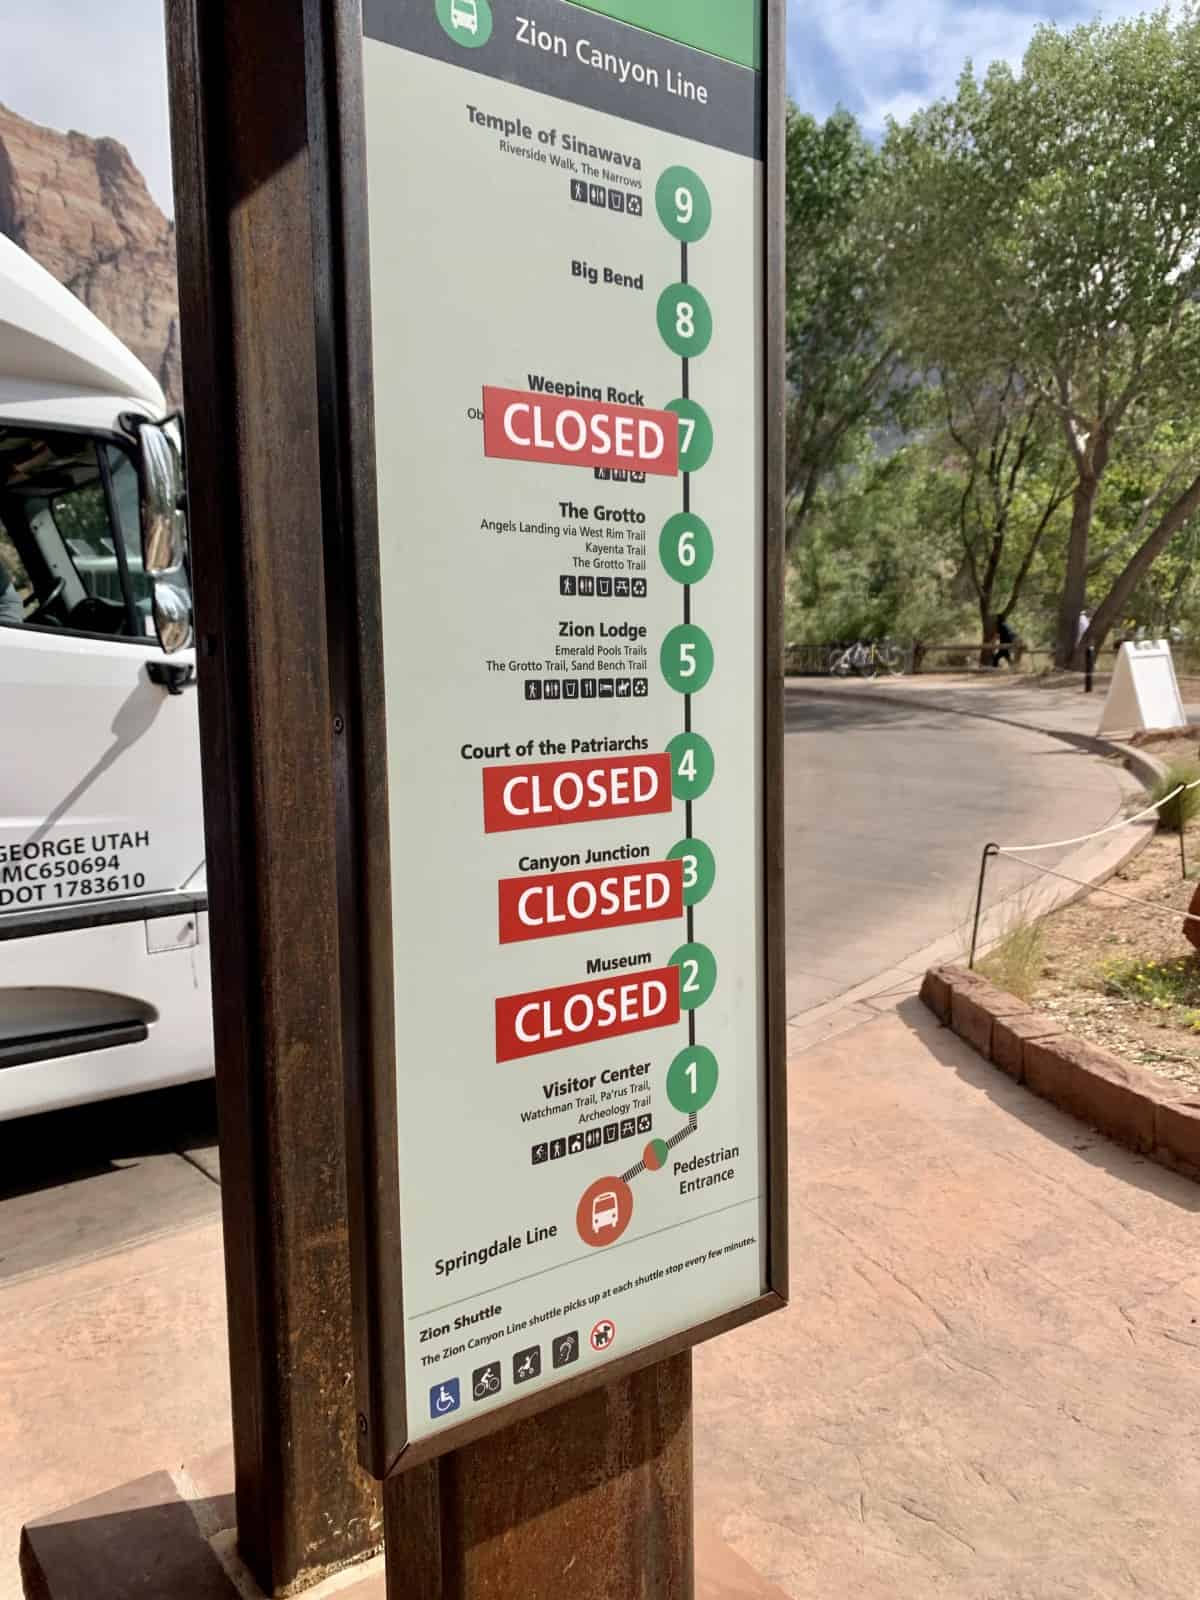 Changes to the Zion shuttle system during COVID